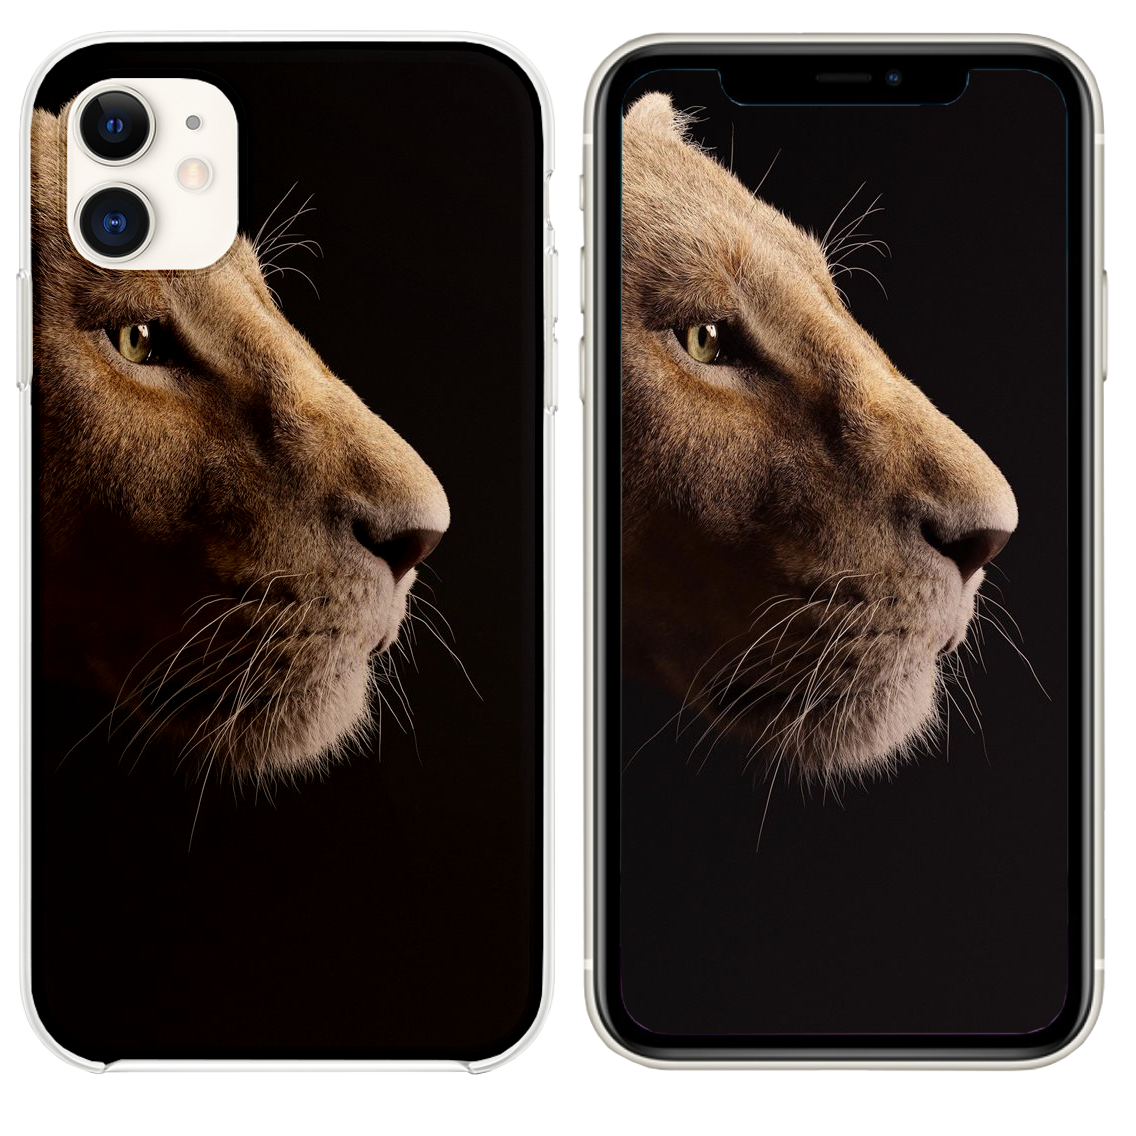 beyonce as nala the lion king 2019 5k iPhone 11 case and